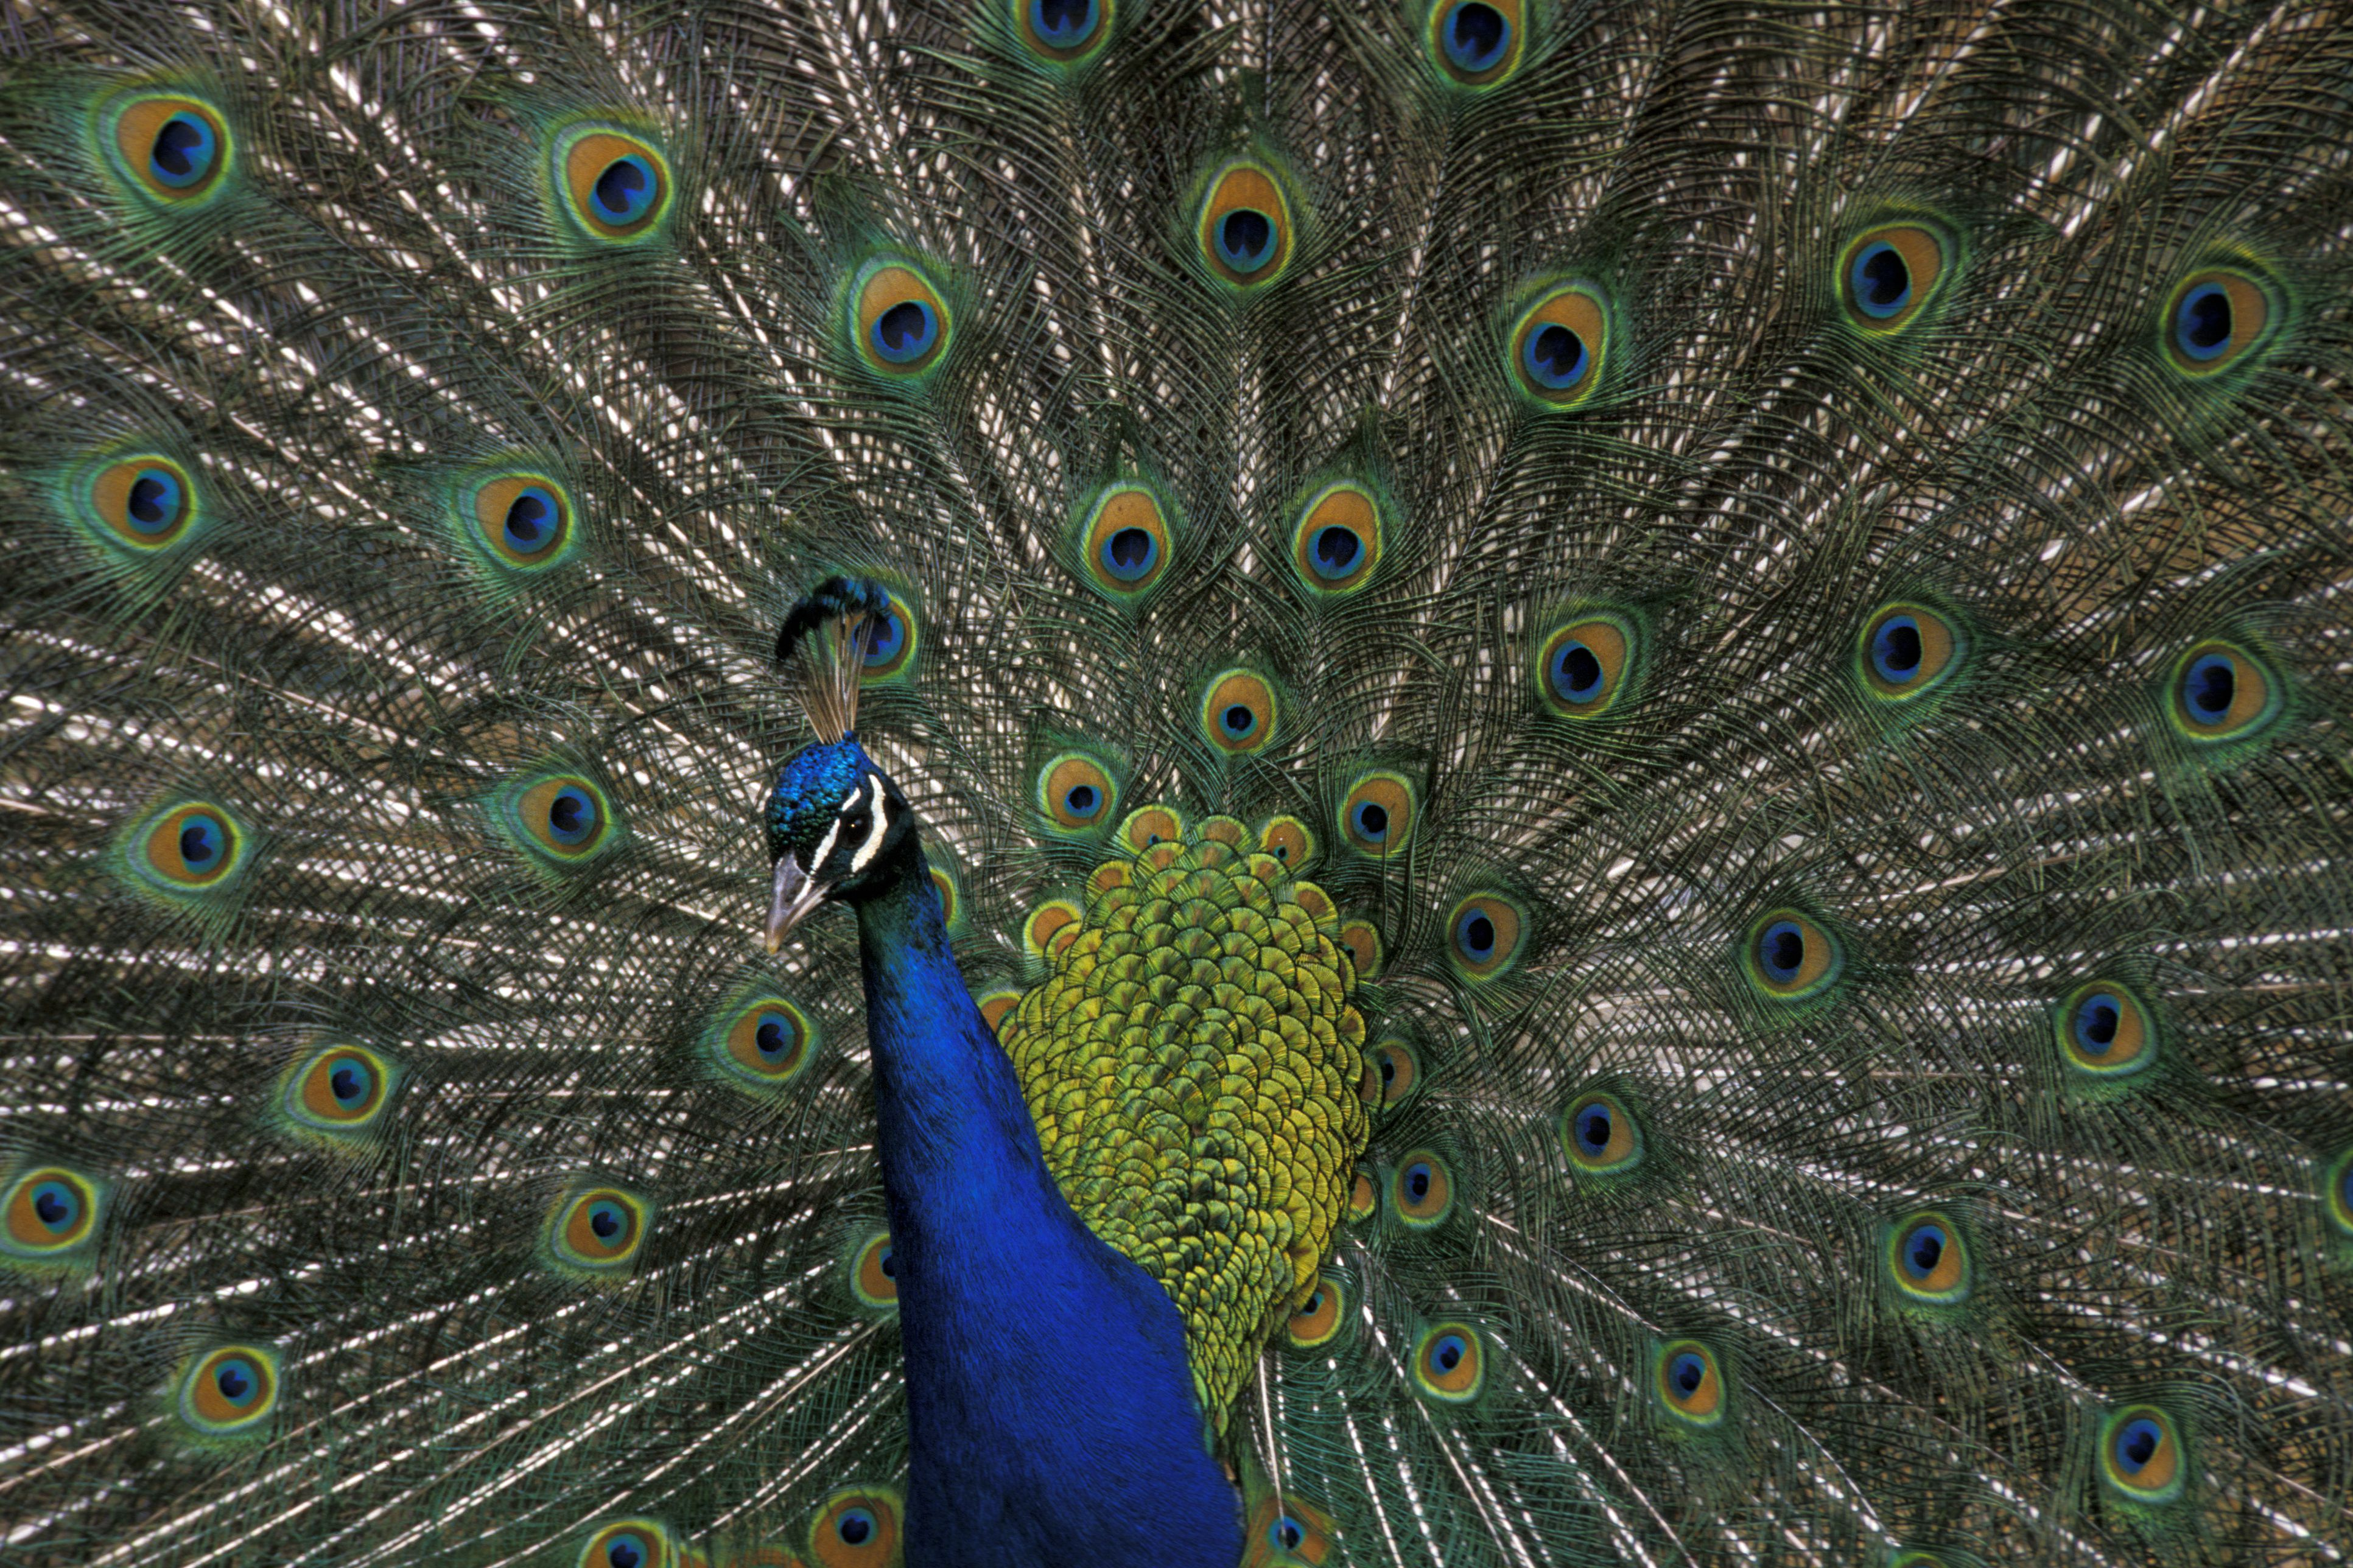 Male peacock displaying plumage at Olympic Game Farm.